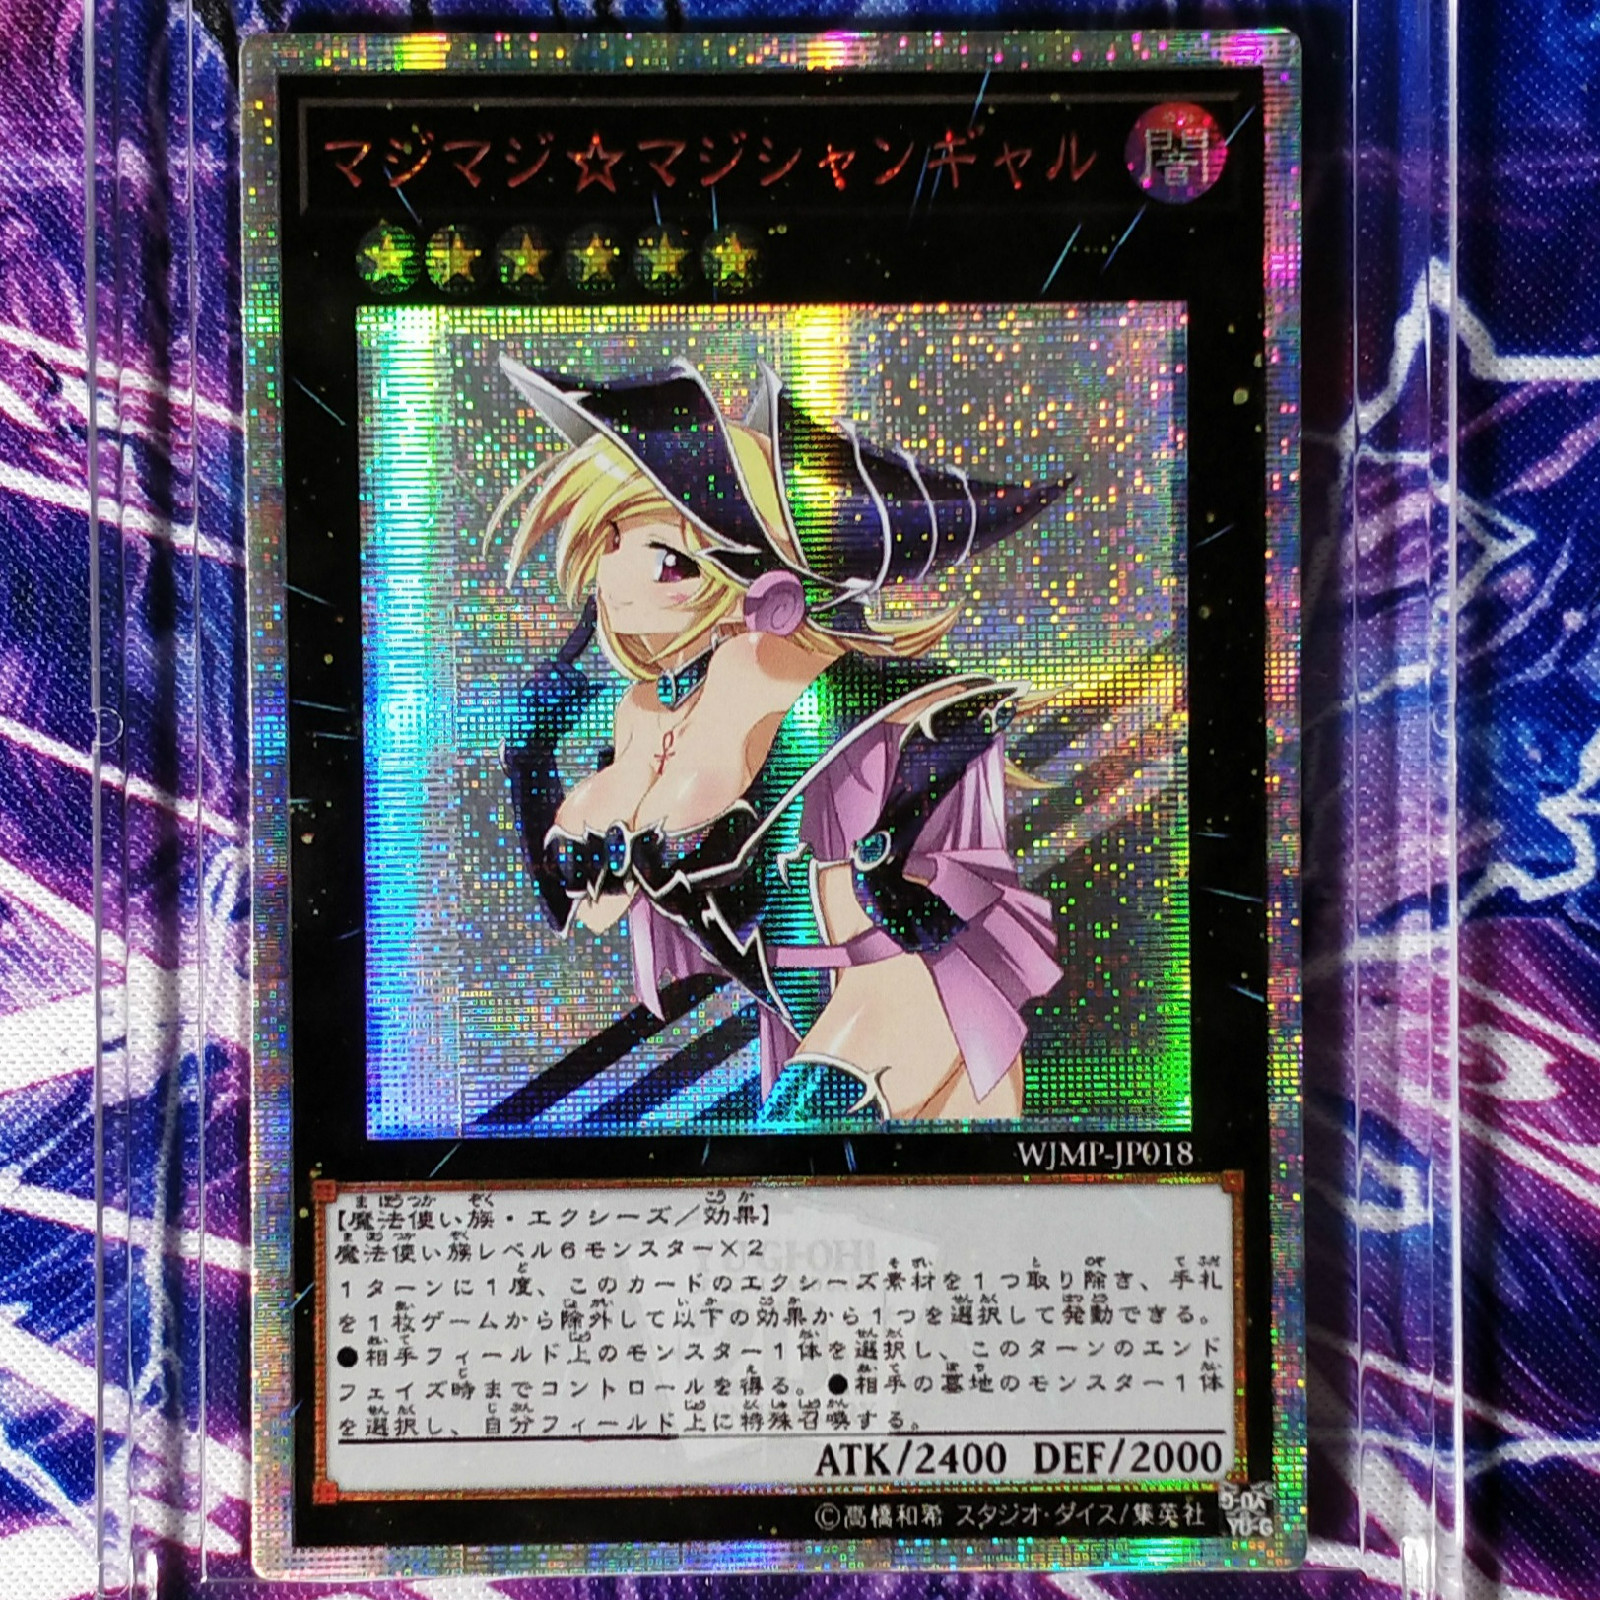 Yu Gi Oh DIY Magi Magi Magician Gal Colorful Toys Hobbies Hobby Collectibles Game Collection Anime Cards